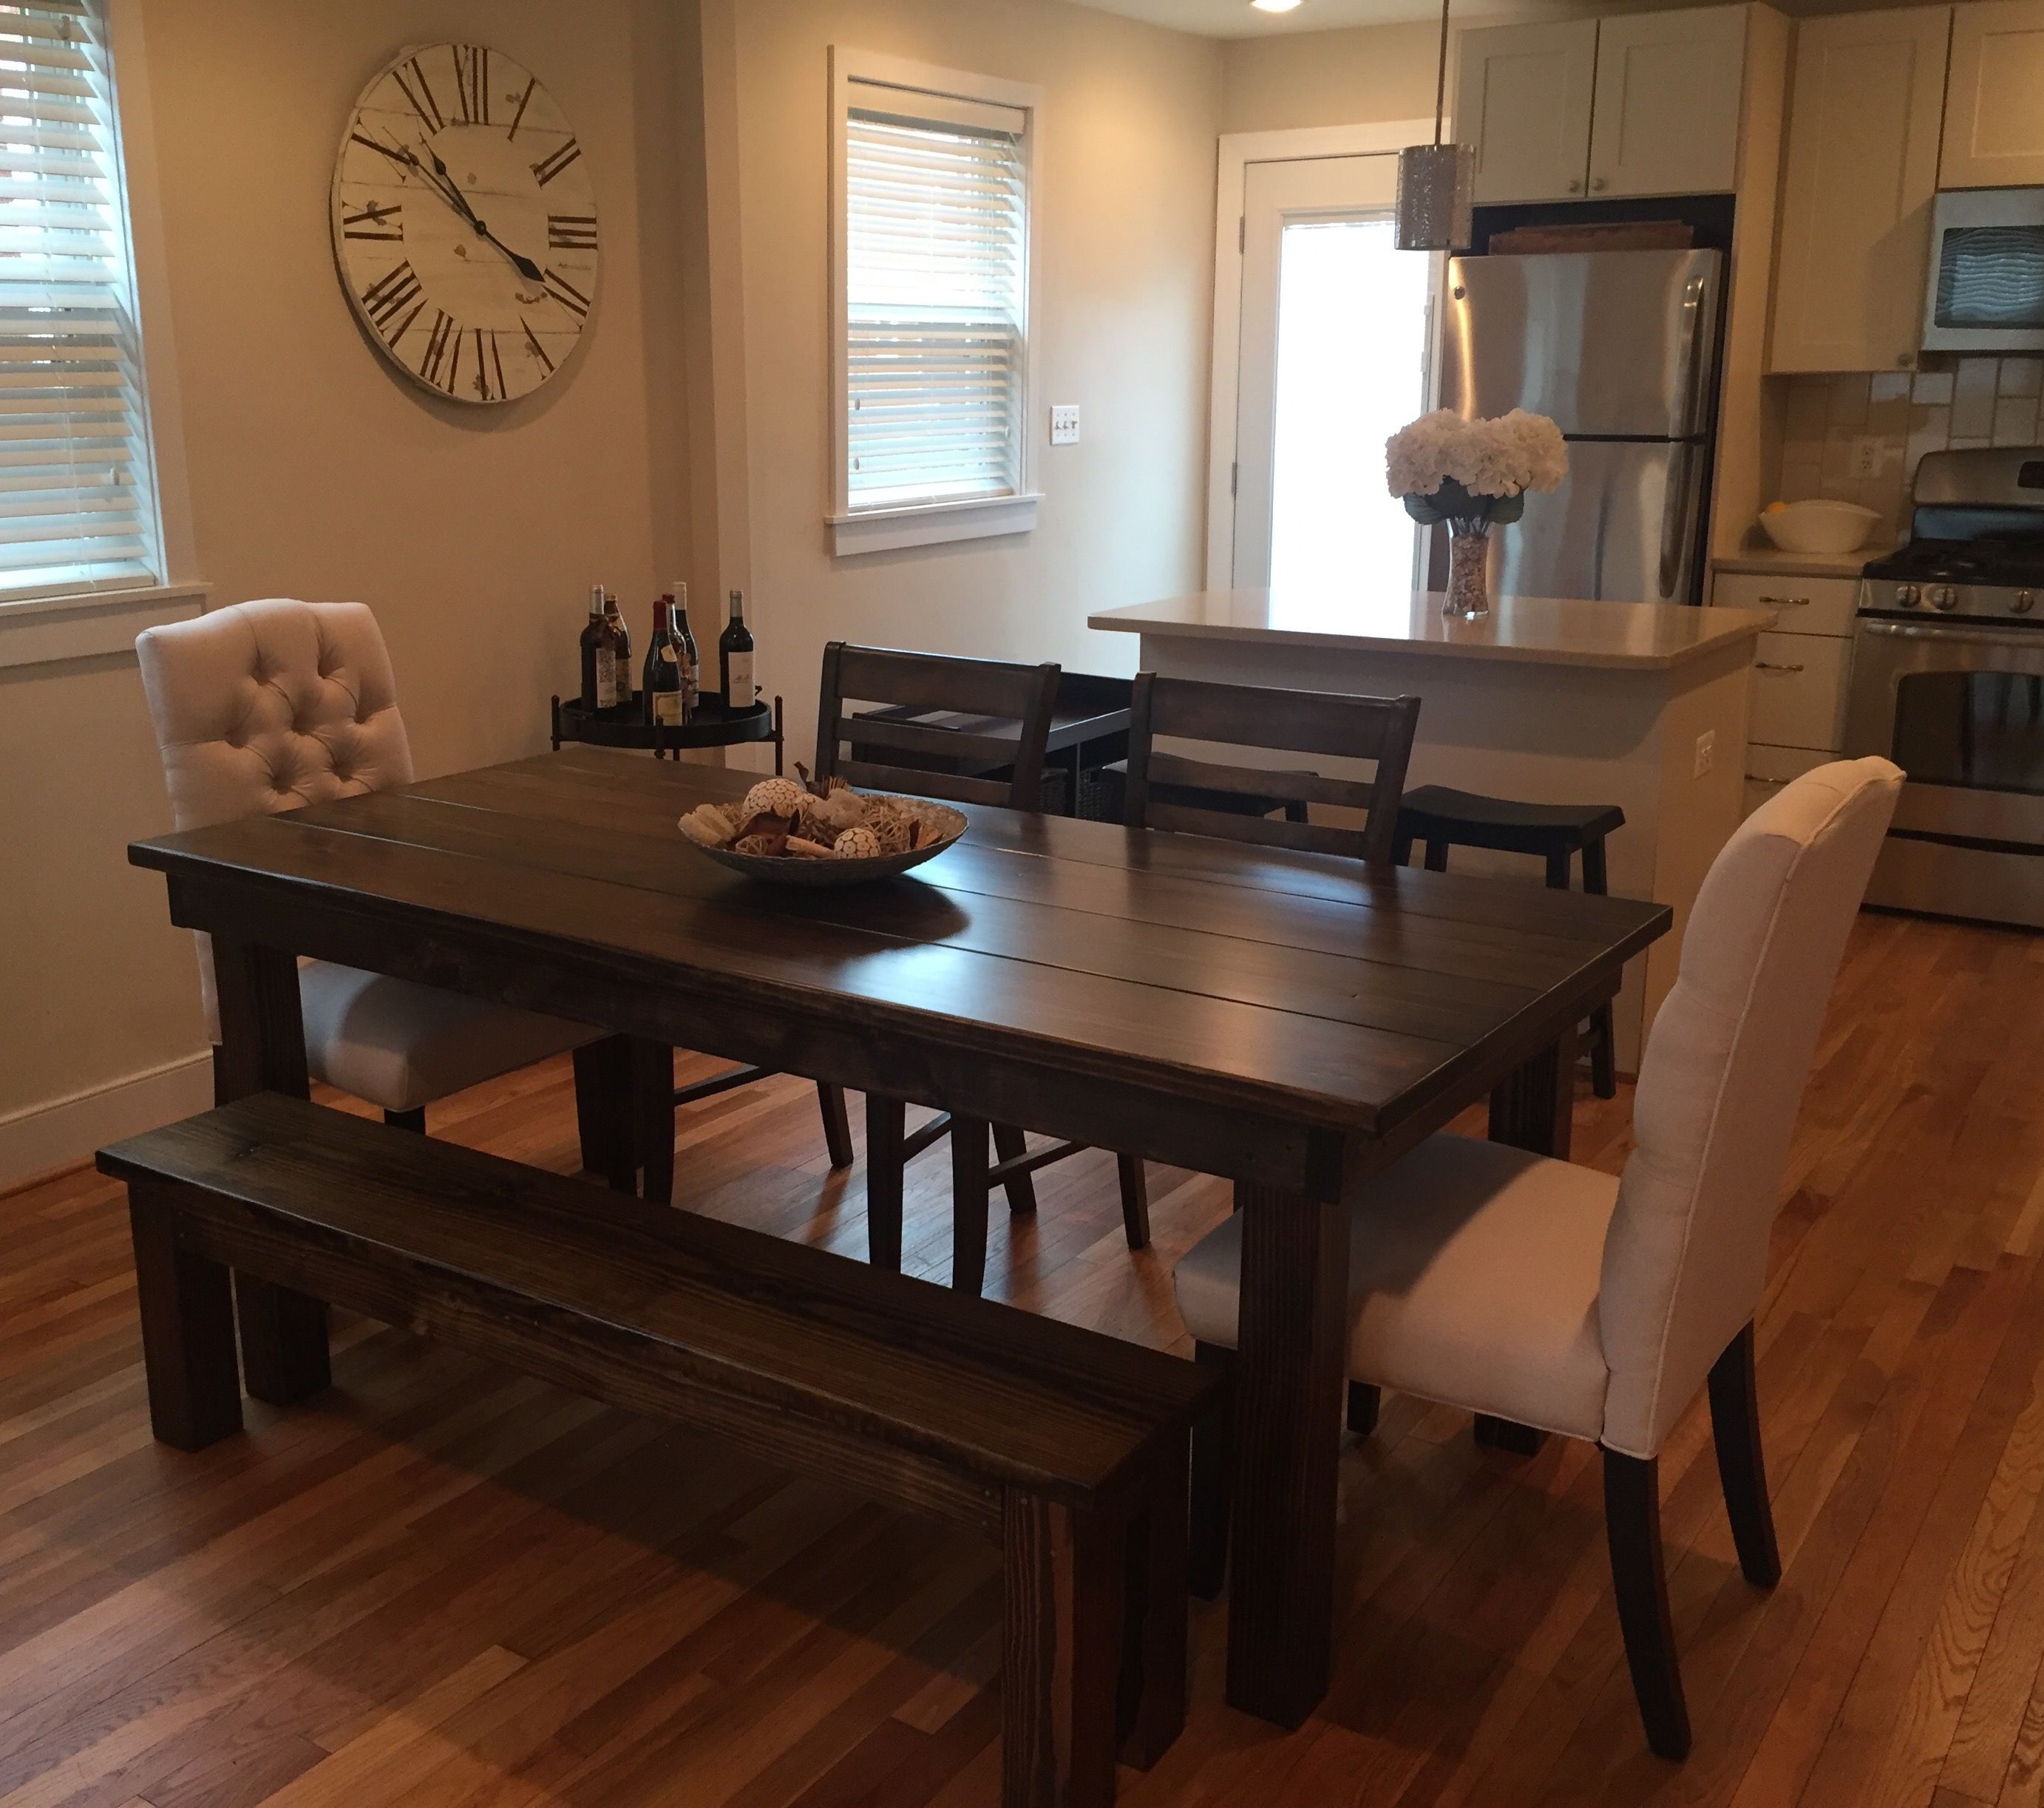 Custom Farmhouse Furniture Builthand And Built To Order In The Glamorous Custom Built Dining Room Tables 2018